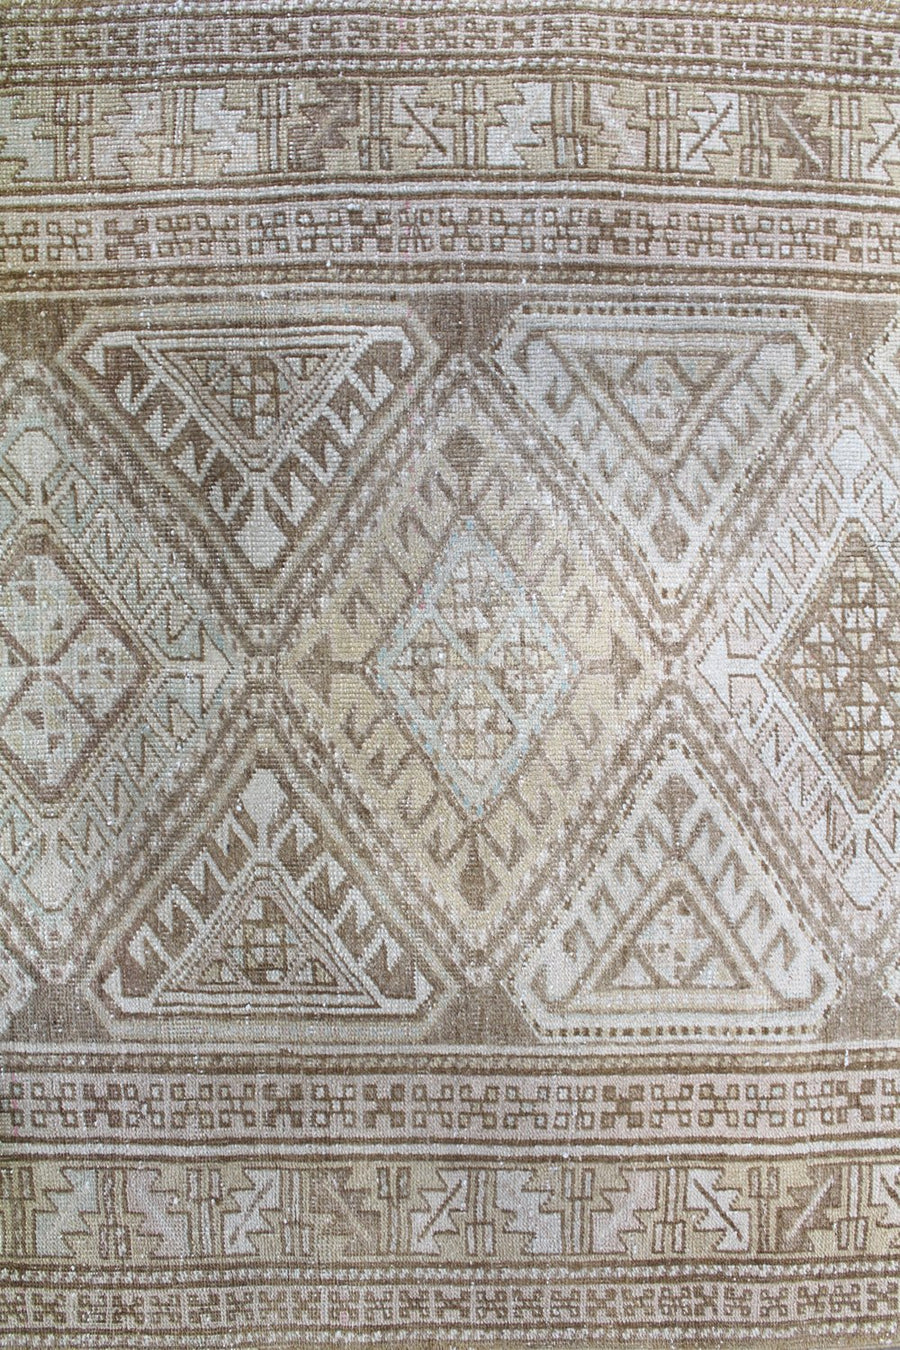 KURDISH HANDKNOTTED RUG, J58736